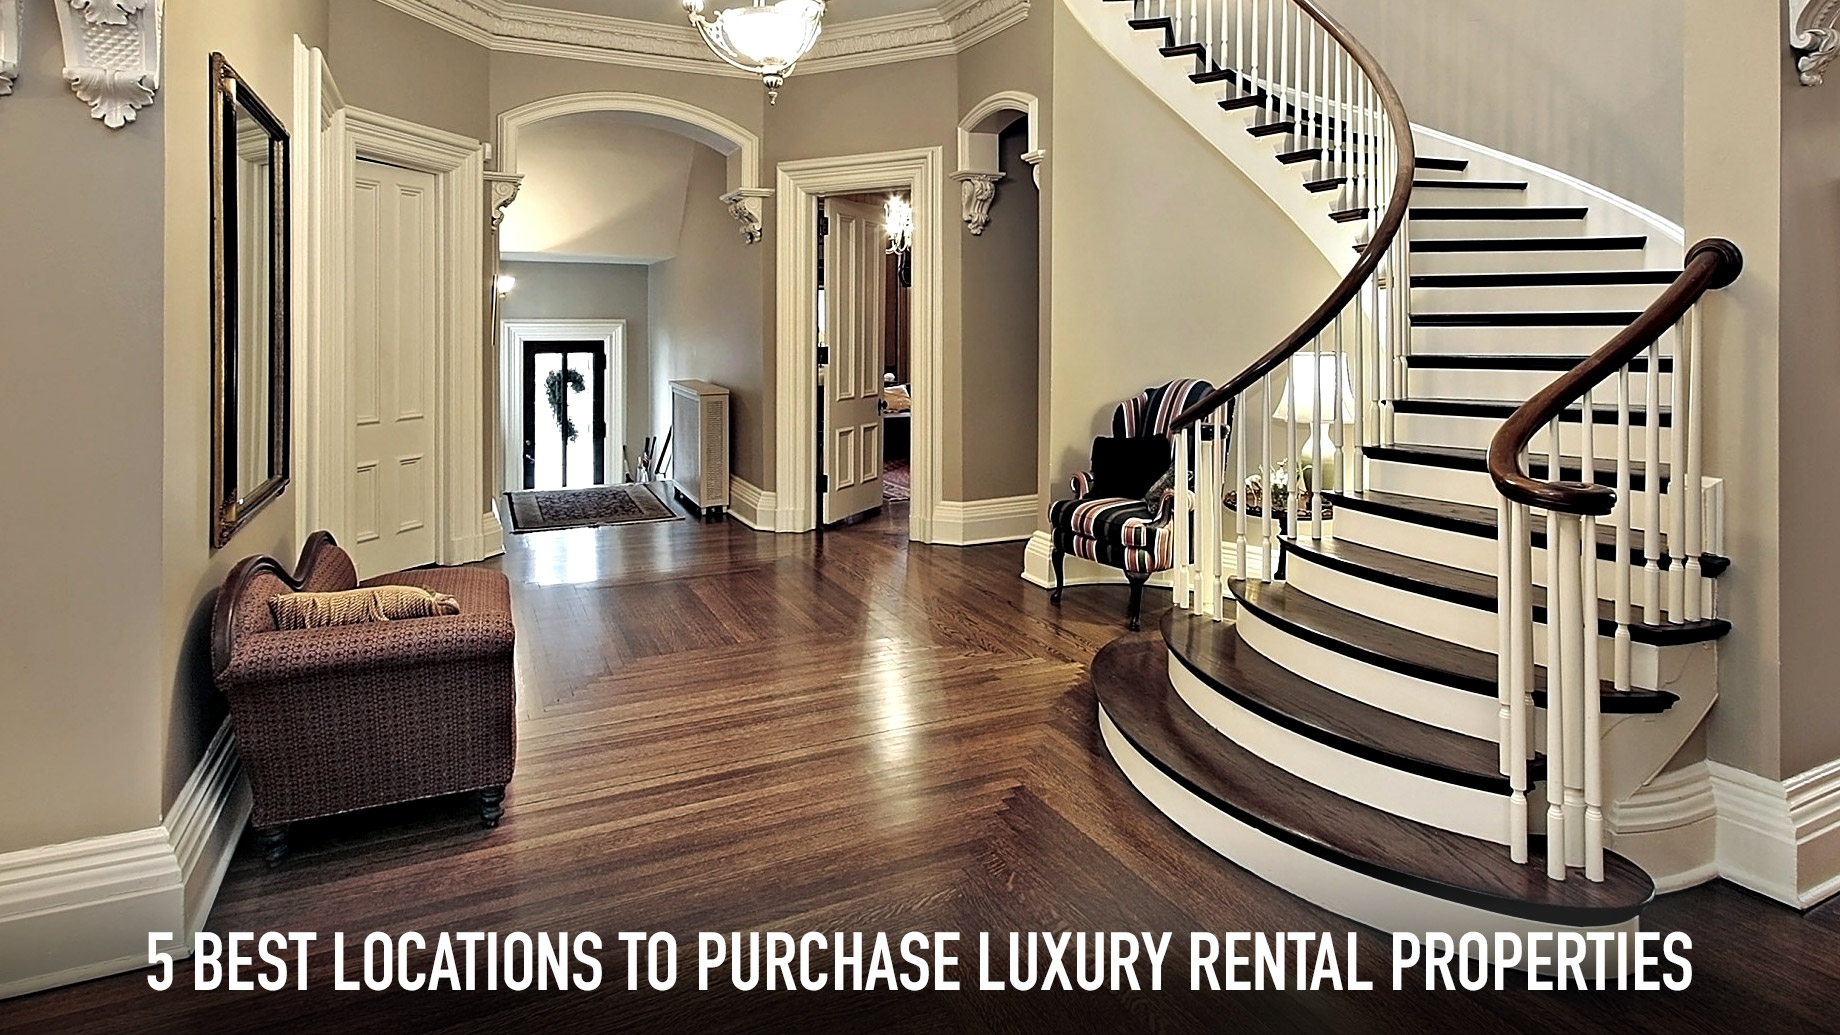 5 Best Locations to Purchase Luxury Rental Properties